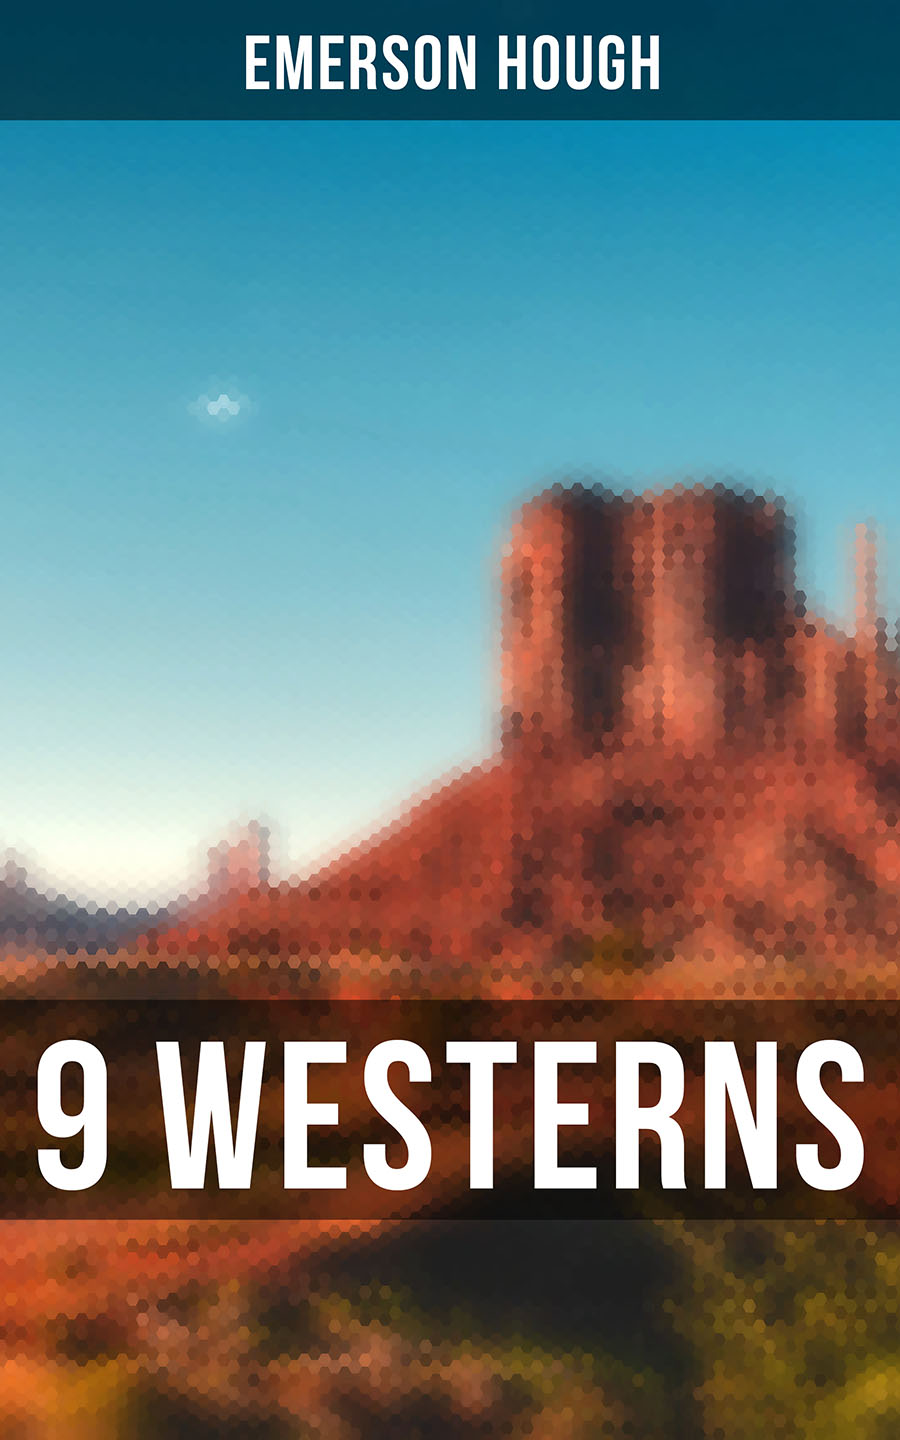 Emerson Hough 9 WESTERNS: The Law of the Land, The Way of a Man, Heart's Desire, The Covered Wagon, 54-40 or Fight, The Man Next Door, The Magnificent Adventure, The Sagebrusher and more missy tippens the guy next door